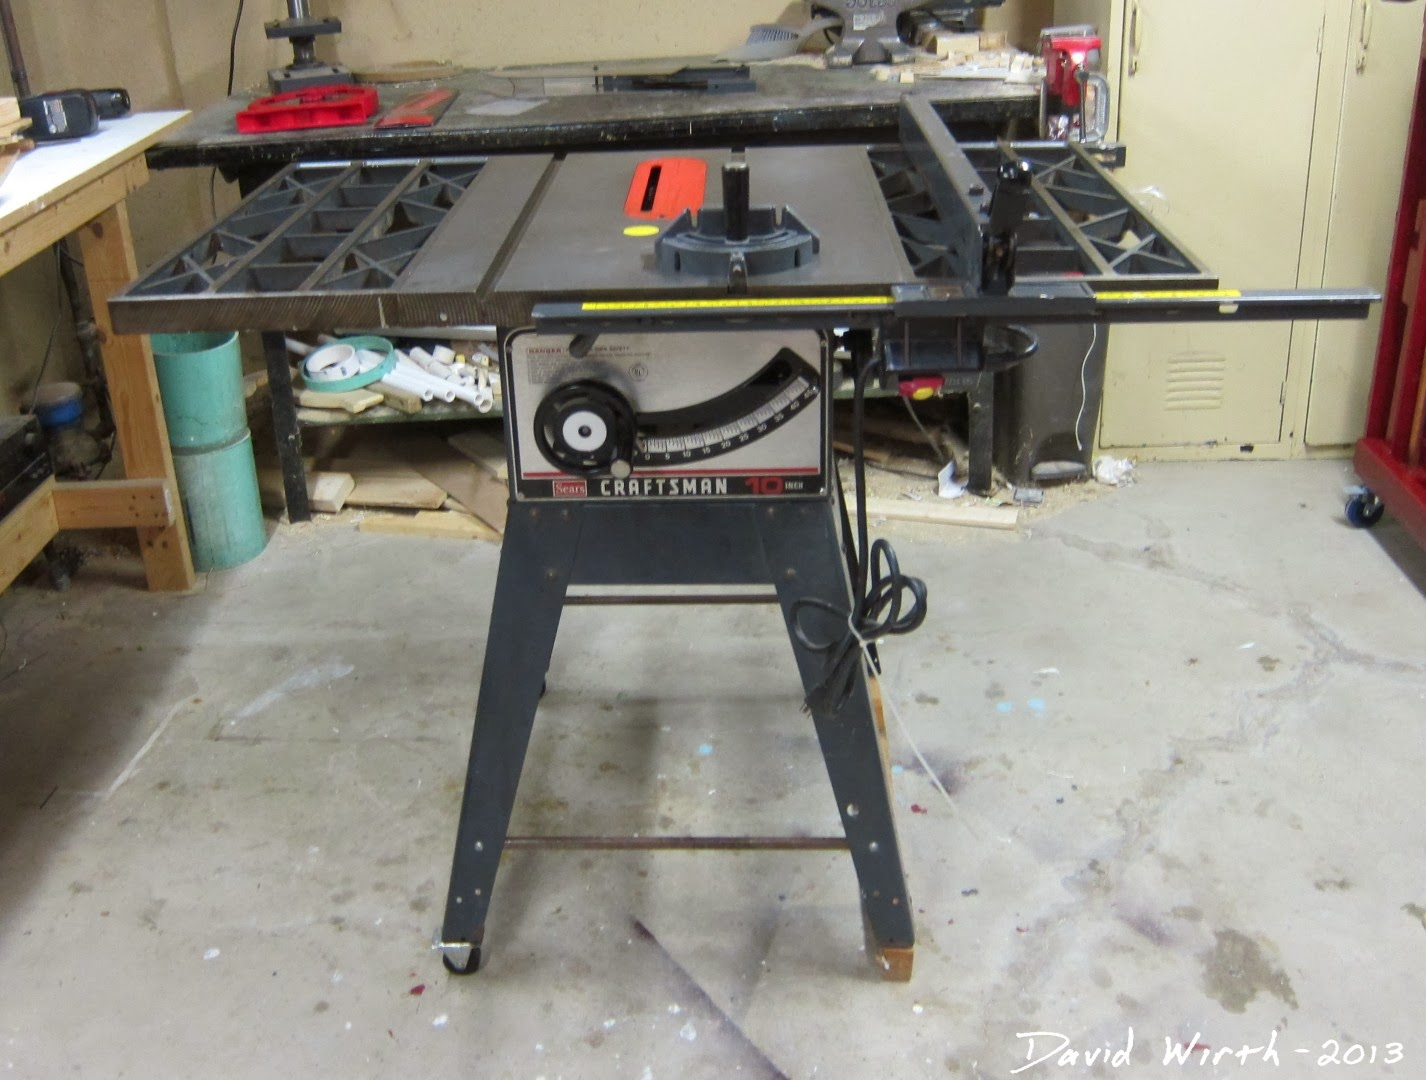 New table saw for 10 dado blade for table saw